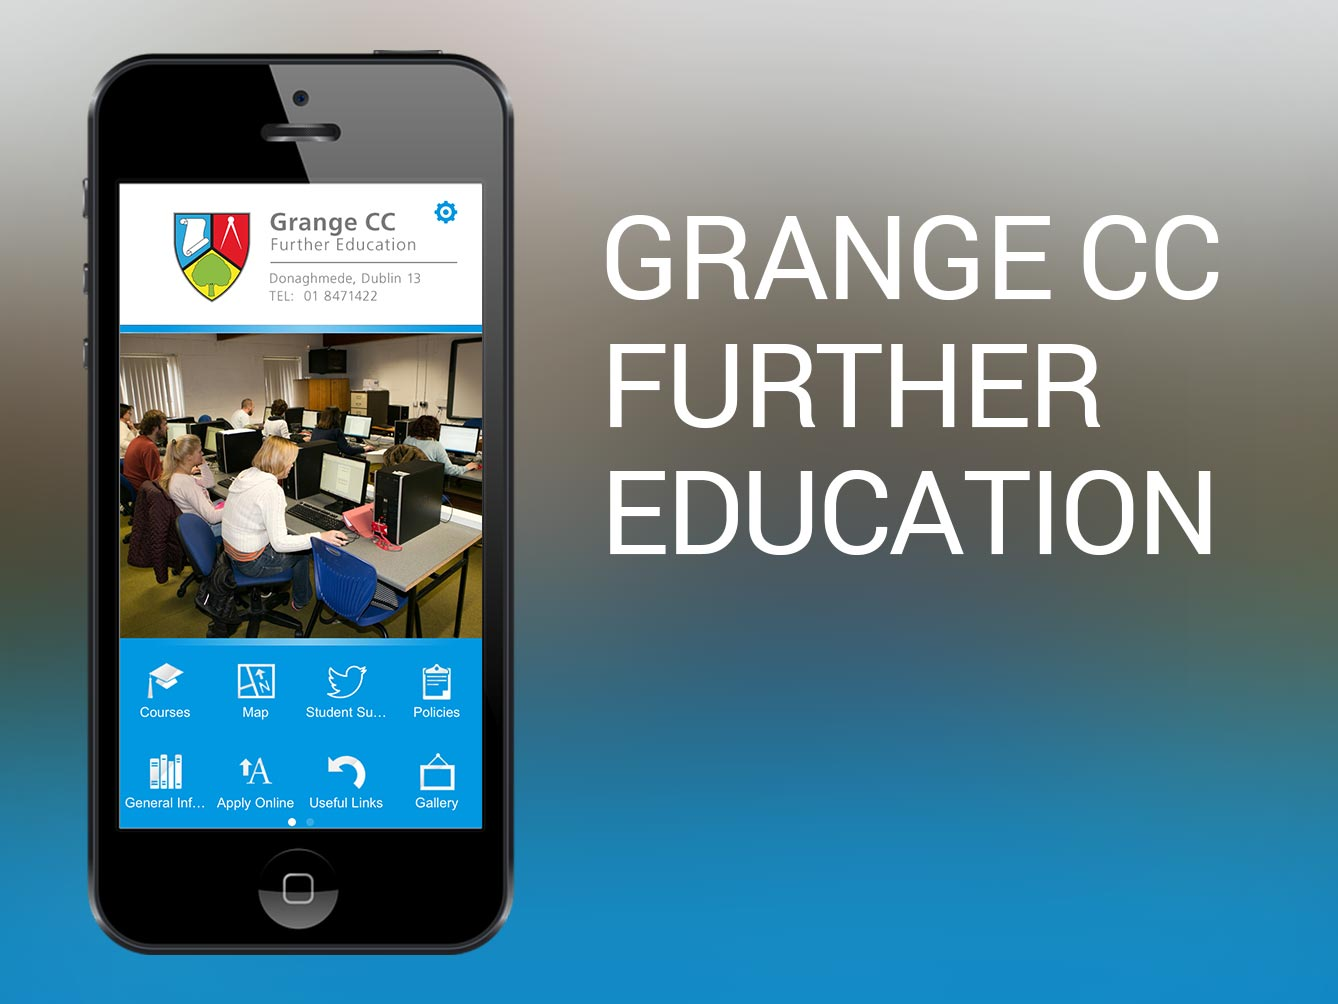 Grange CC Further Education